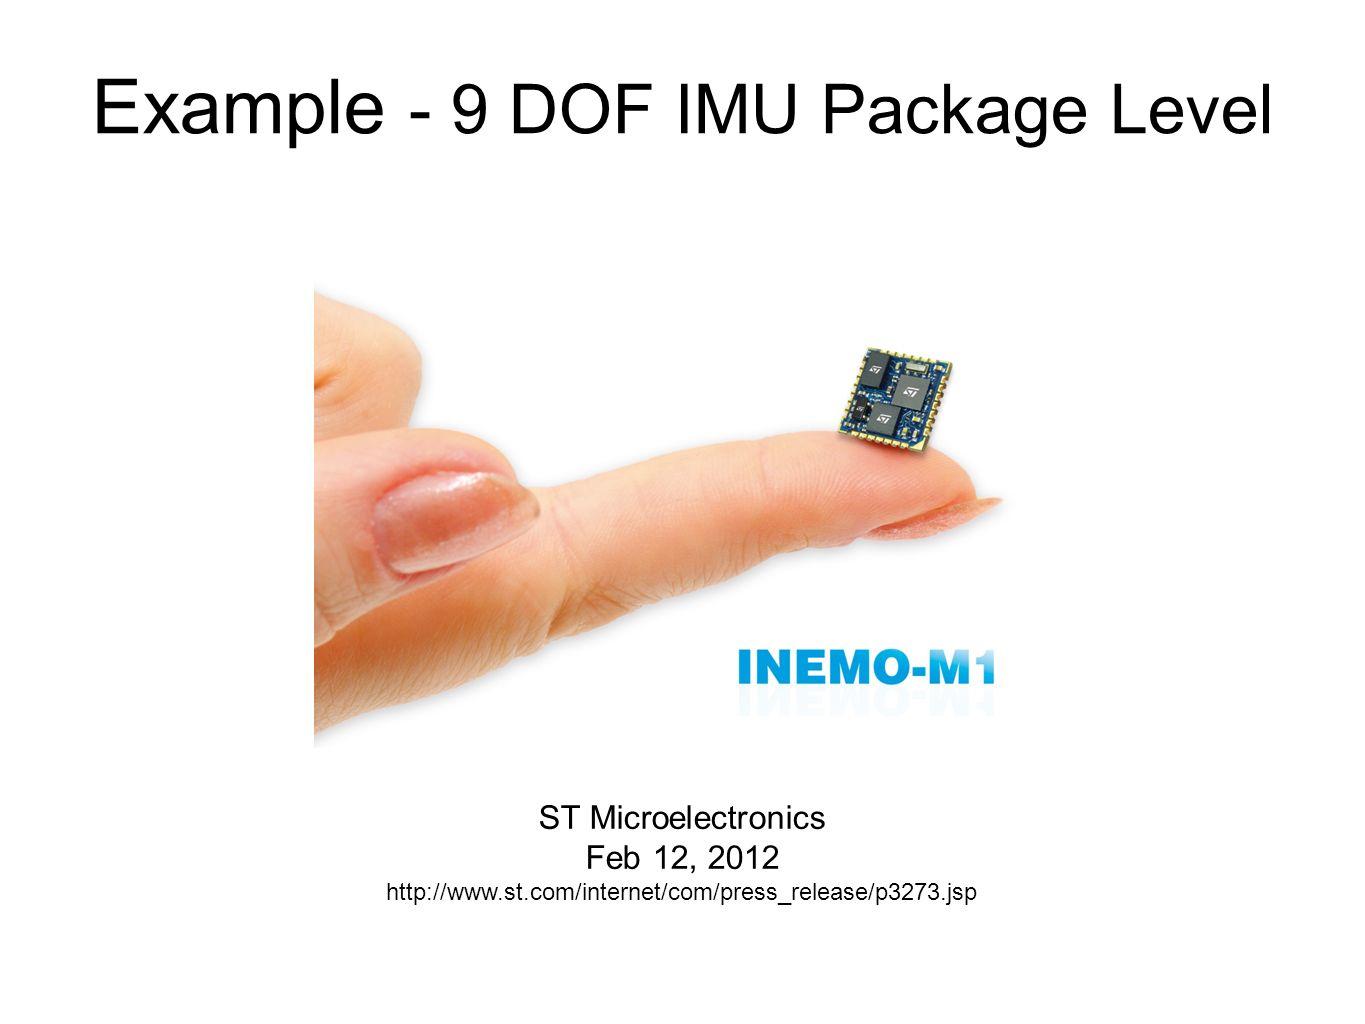 Example - 9 DOF IMU Package Level